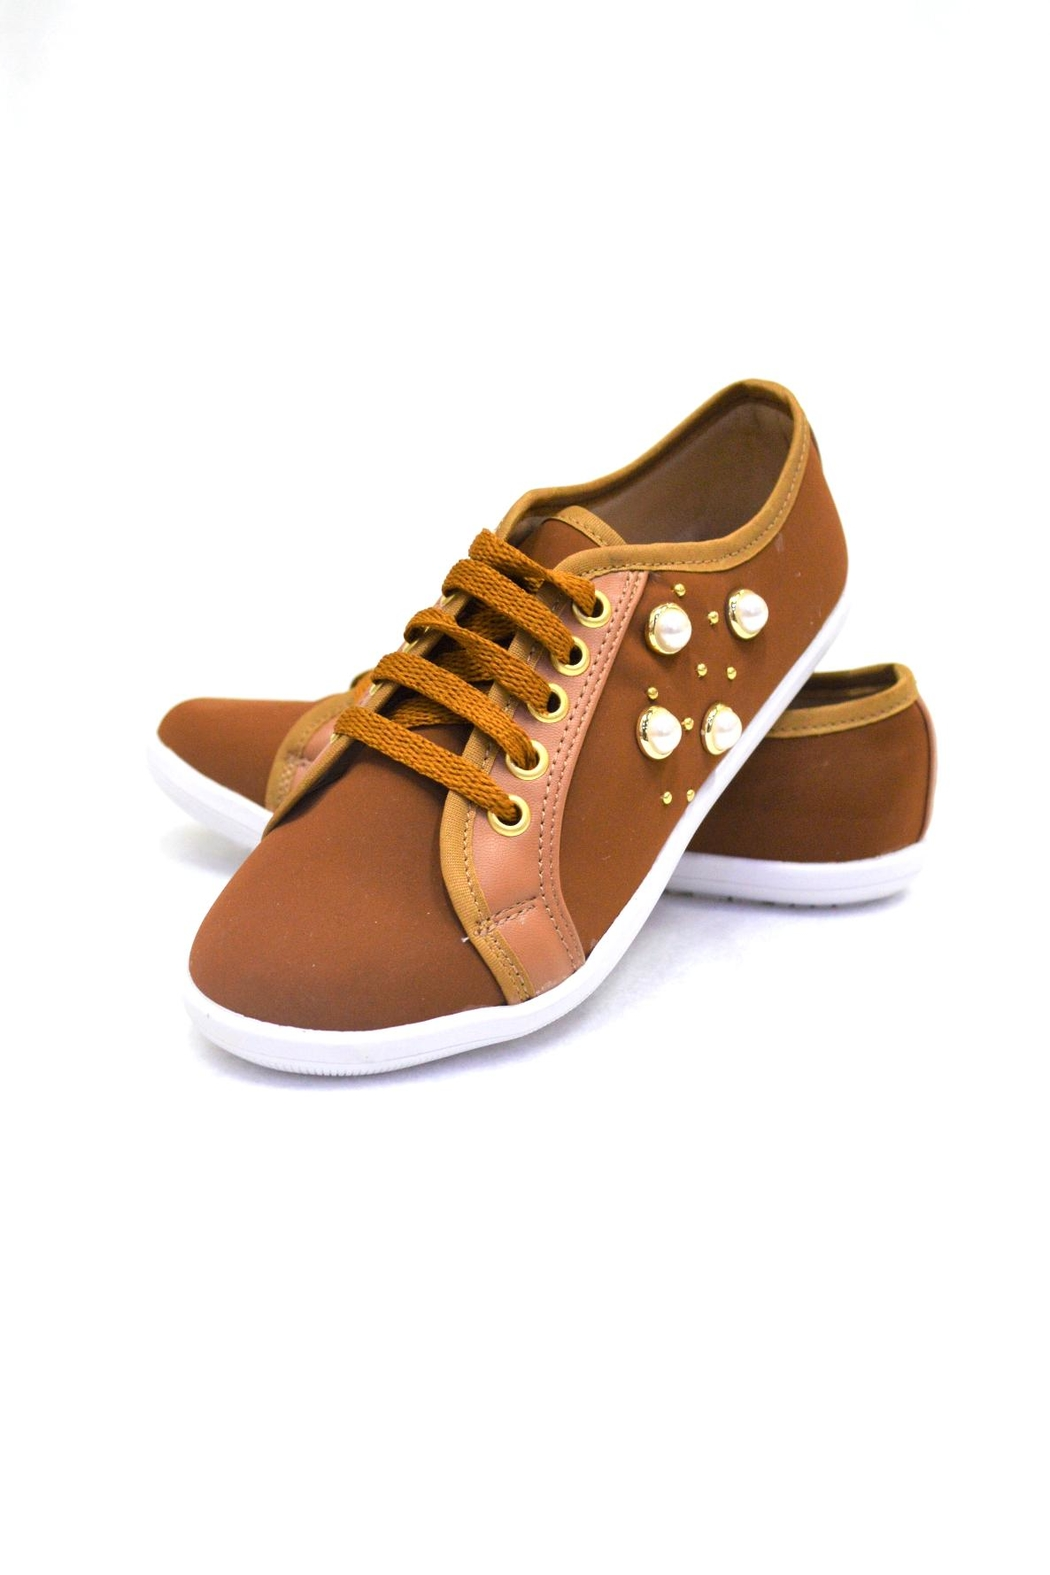 SD BOUTIQUE Camel Sneakers Shoe - Main Image